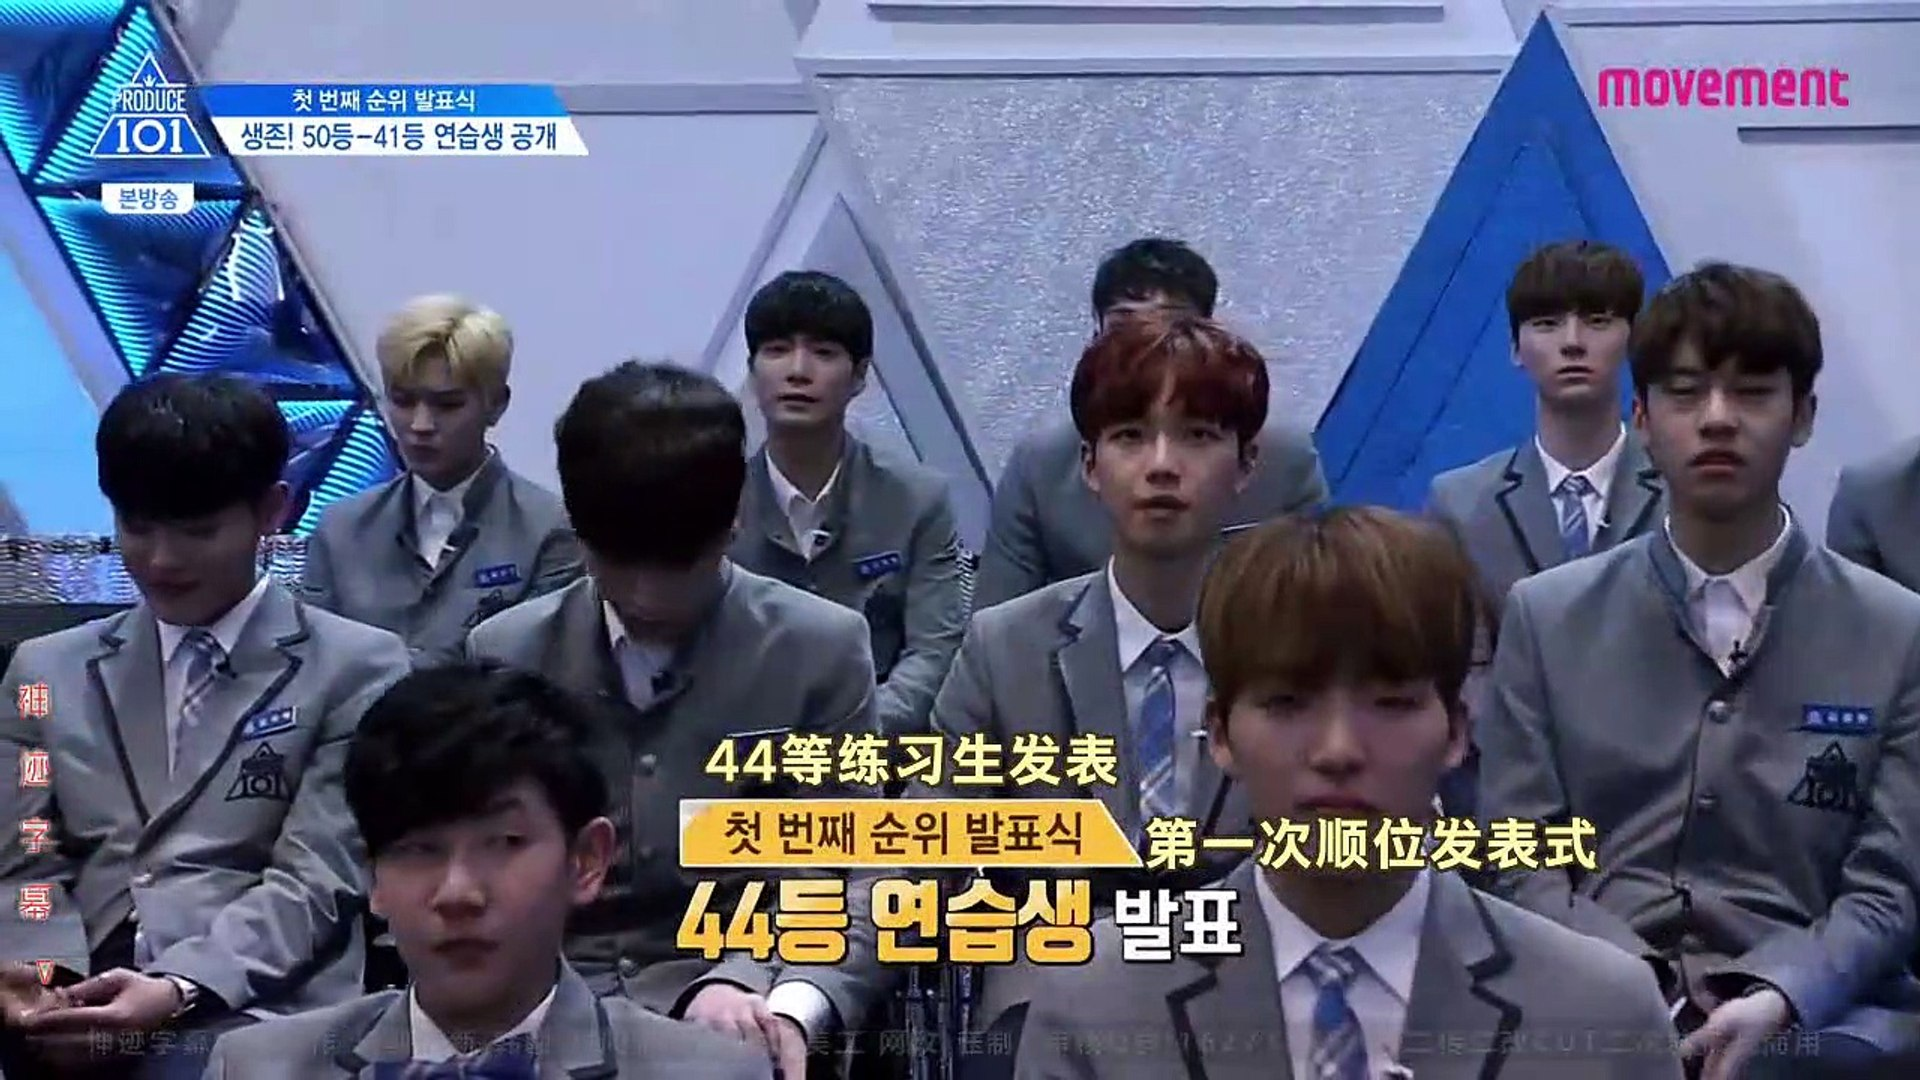 Top Five Watch Produce 101 Season 2 Episode 5 Eng Sub - Circus